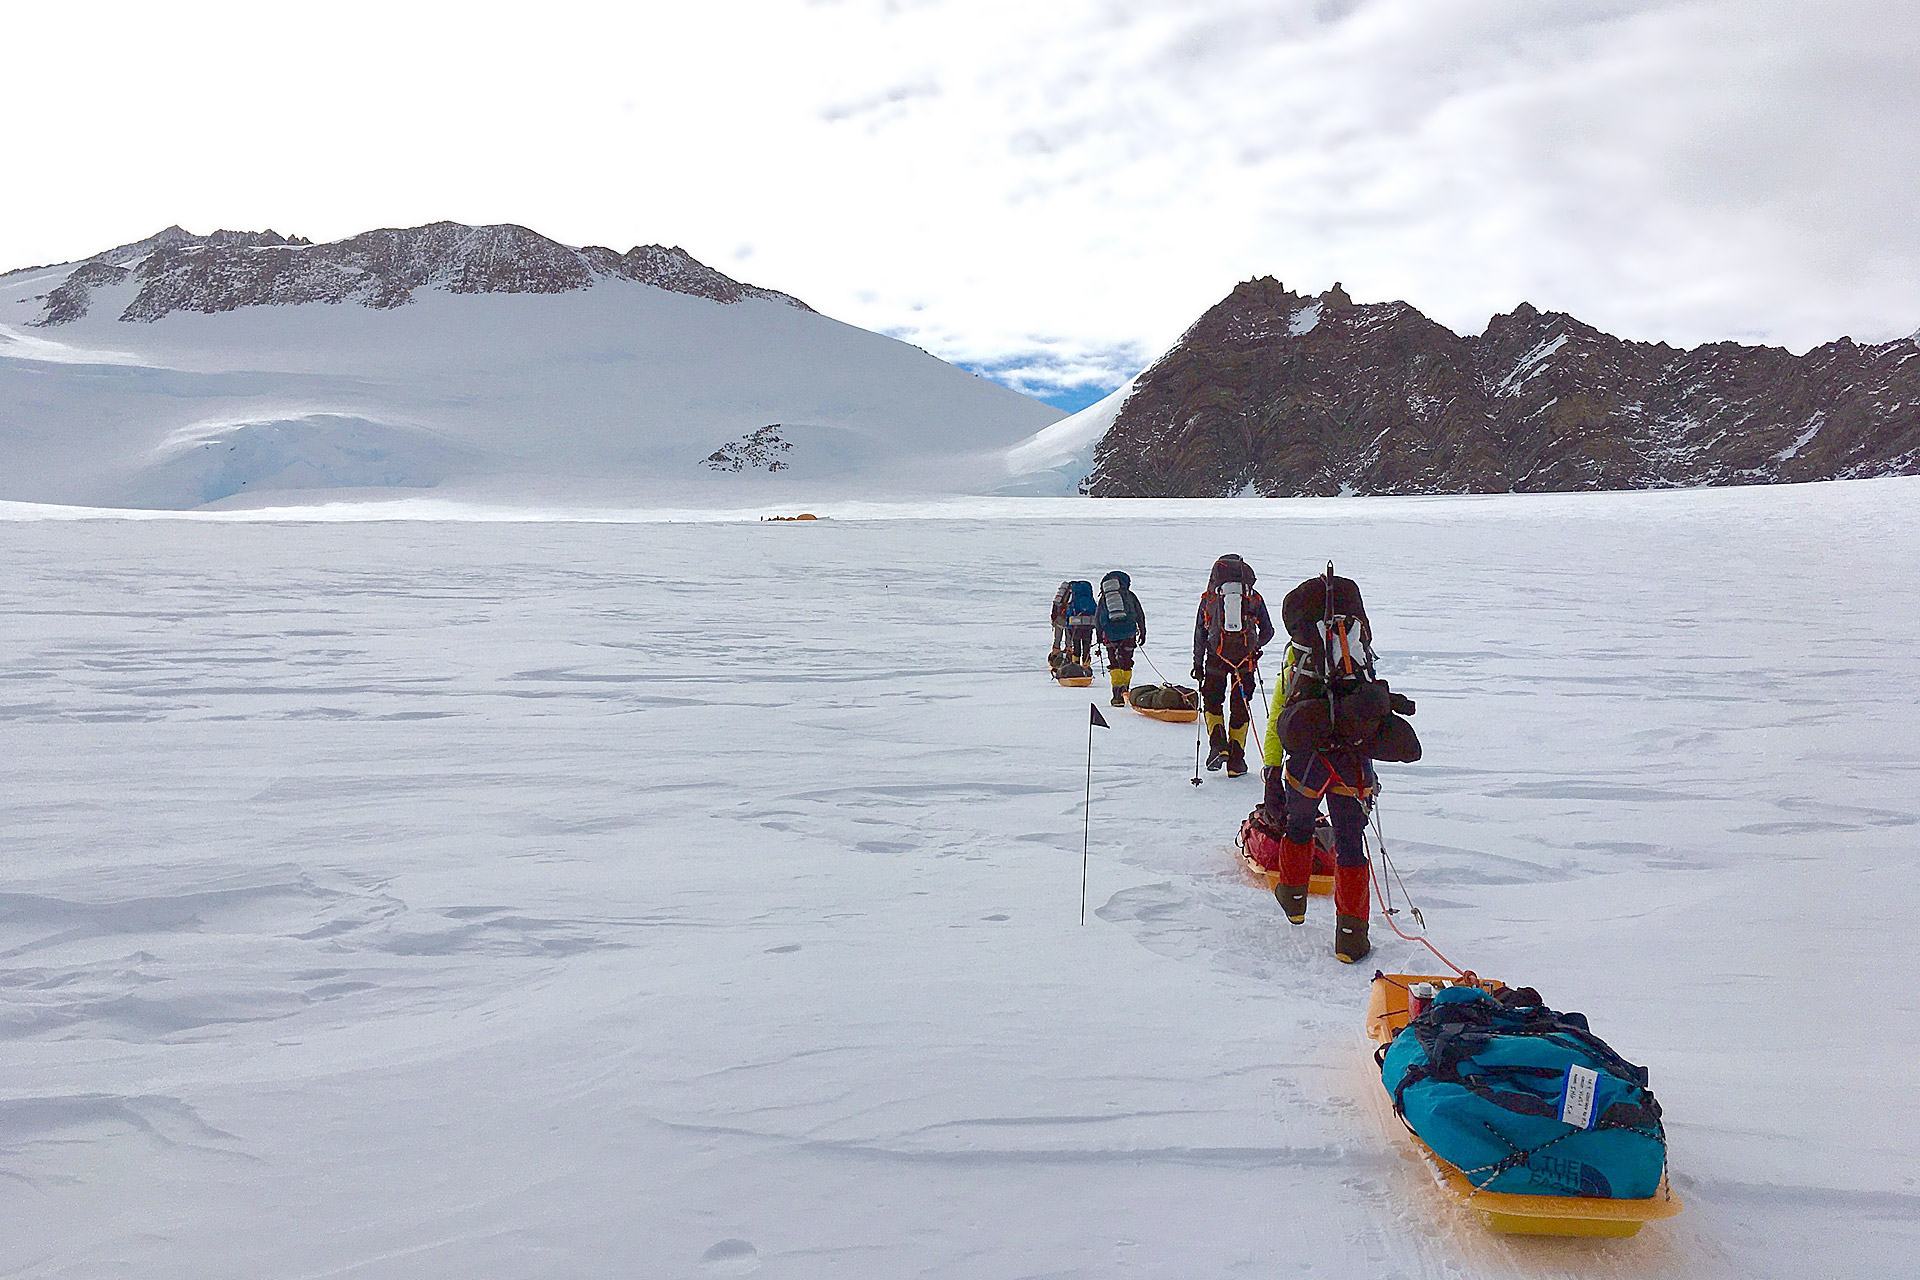 Dragging sleds on Vinson (Emily Johnston)